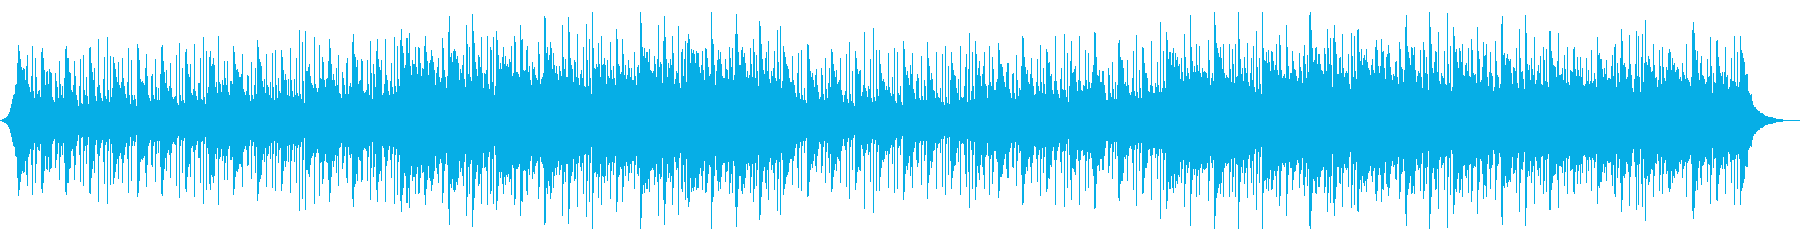 Beautiful and refreshing corporate VP acoustic guitar piano's reproduced waveform